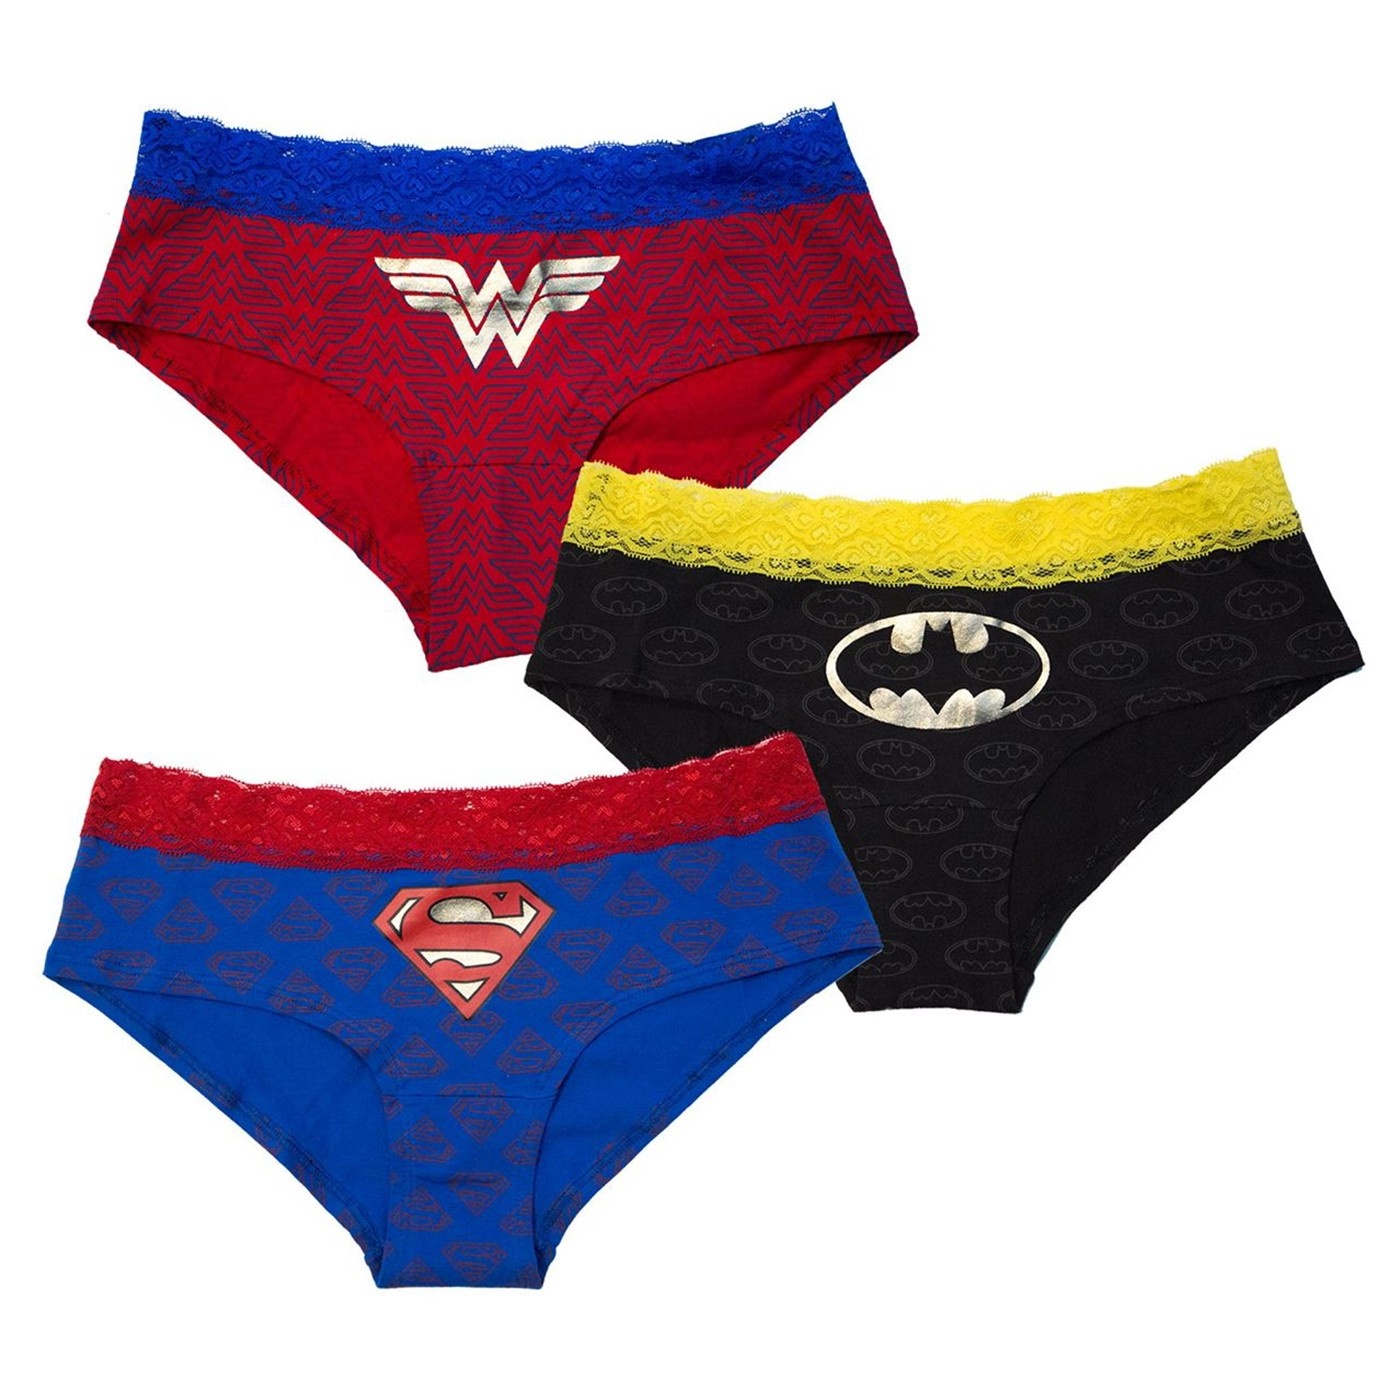 DC Comics Superhero Lace 3 Pack Hipster Panties